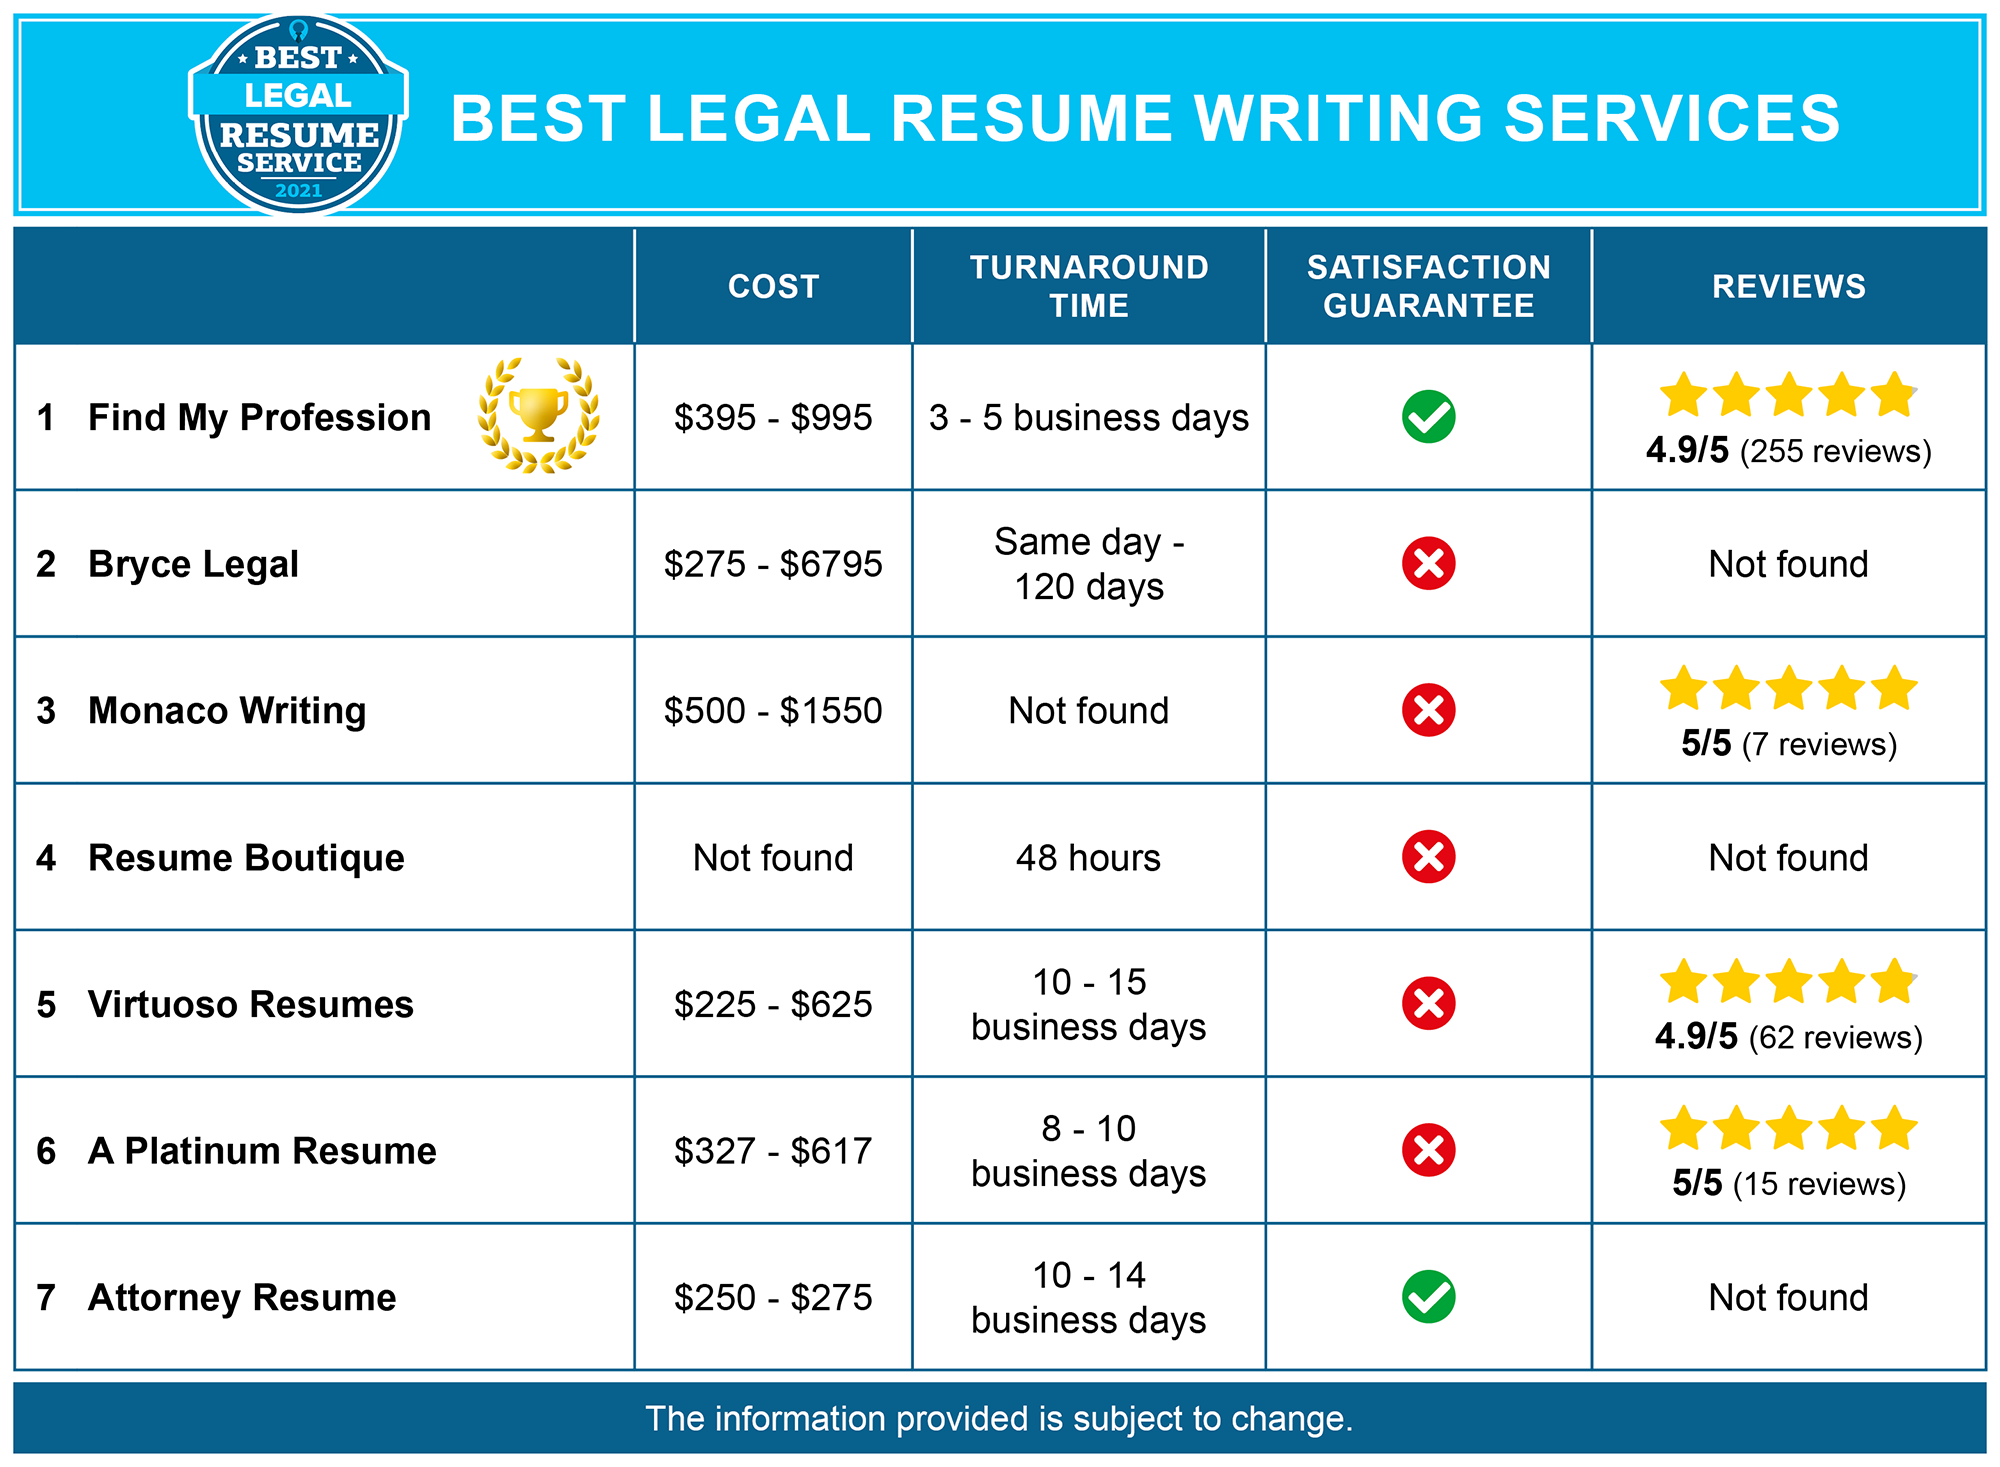 Best Legal Resume Writing Services